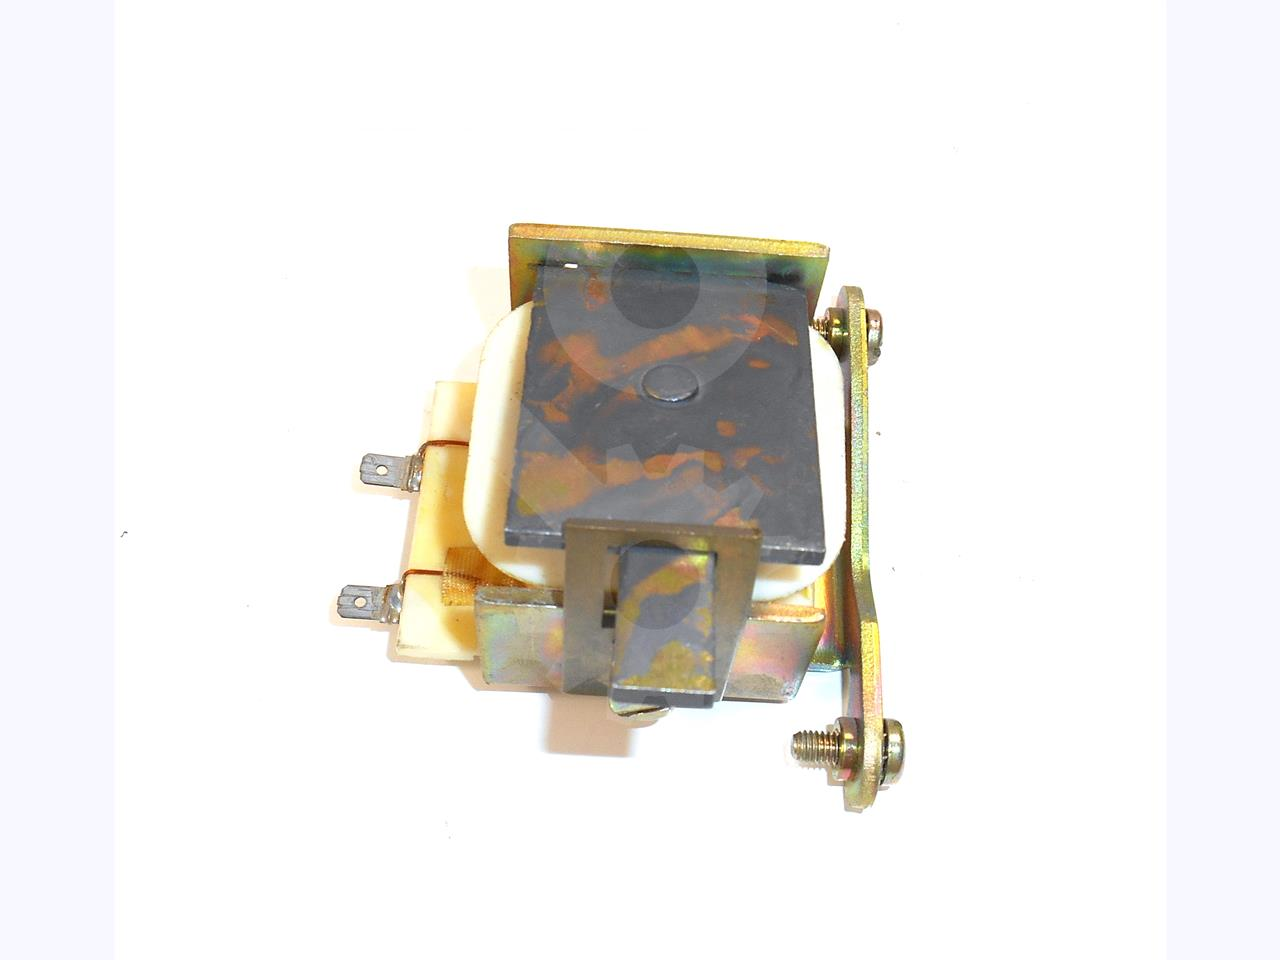 1A33593G06 Cutler-Hammer 120VAC SHUNT TRIP COIL ASSEMBLY FOR DS / DSII